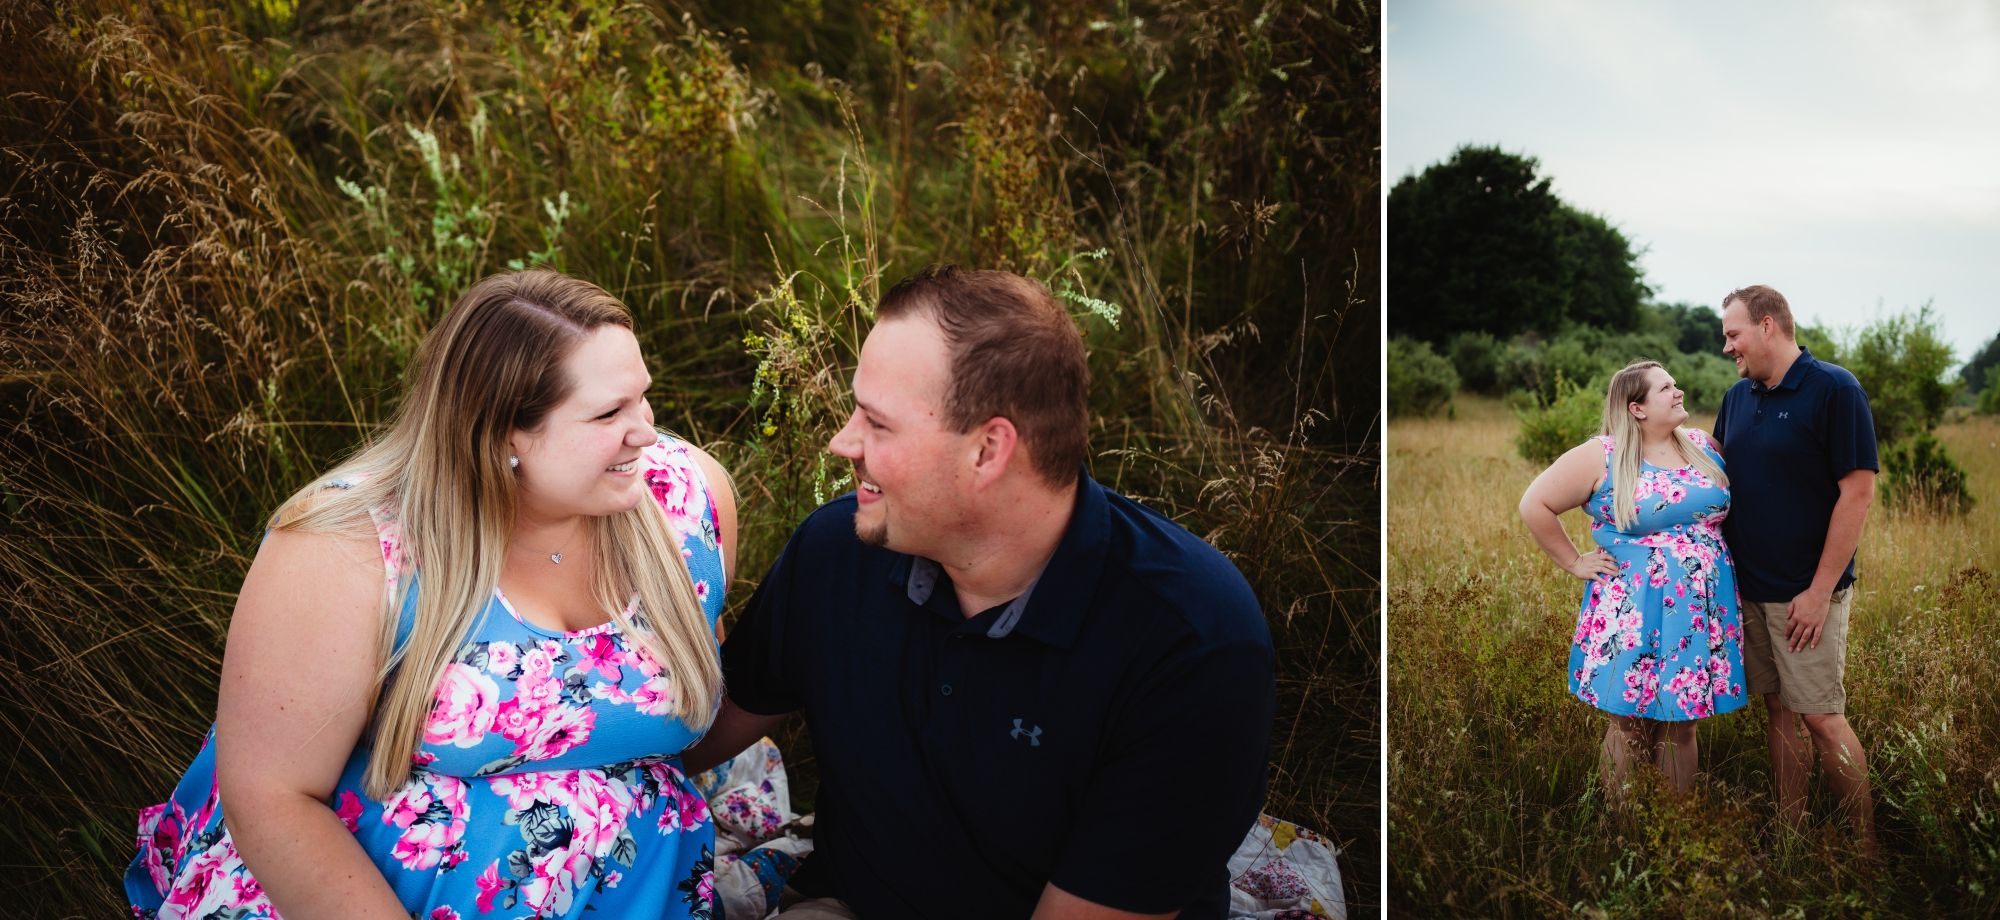 Photos of an engaged couple smiling at each other in a field. She wear a light blue and pink floral dress.